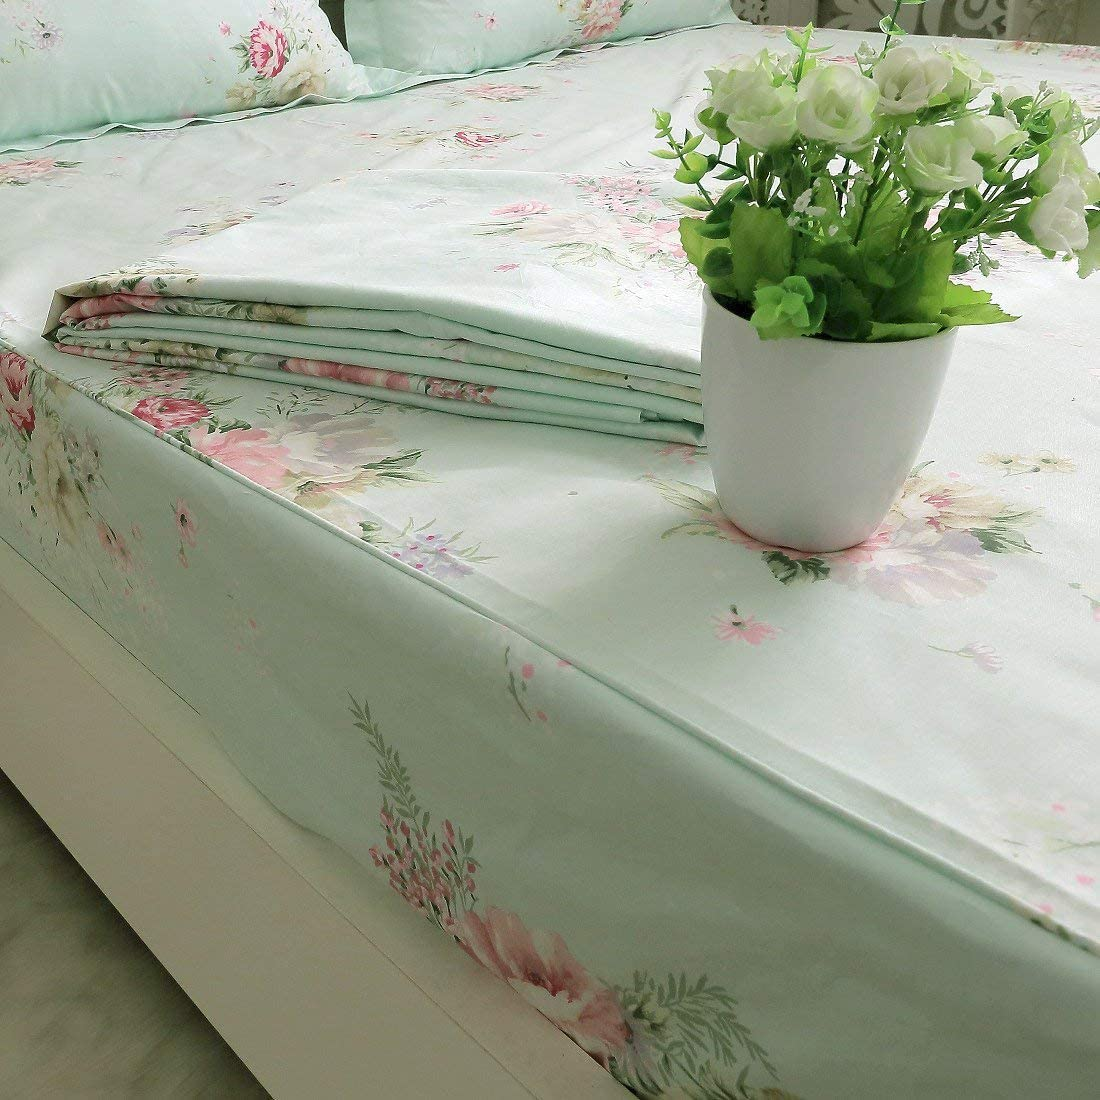 FADFAY Floral Fitted Sheet Only Queen Size 1-Piece Premium 100% Cotton French Countryside Green Floral Soft Hypoallergenic, Single Fitted Sheet Without Pillowcases